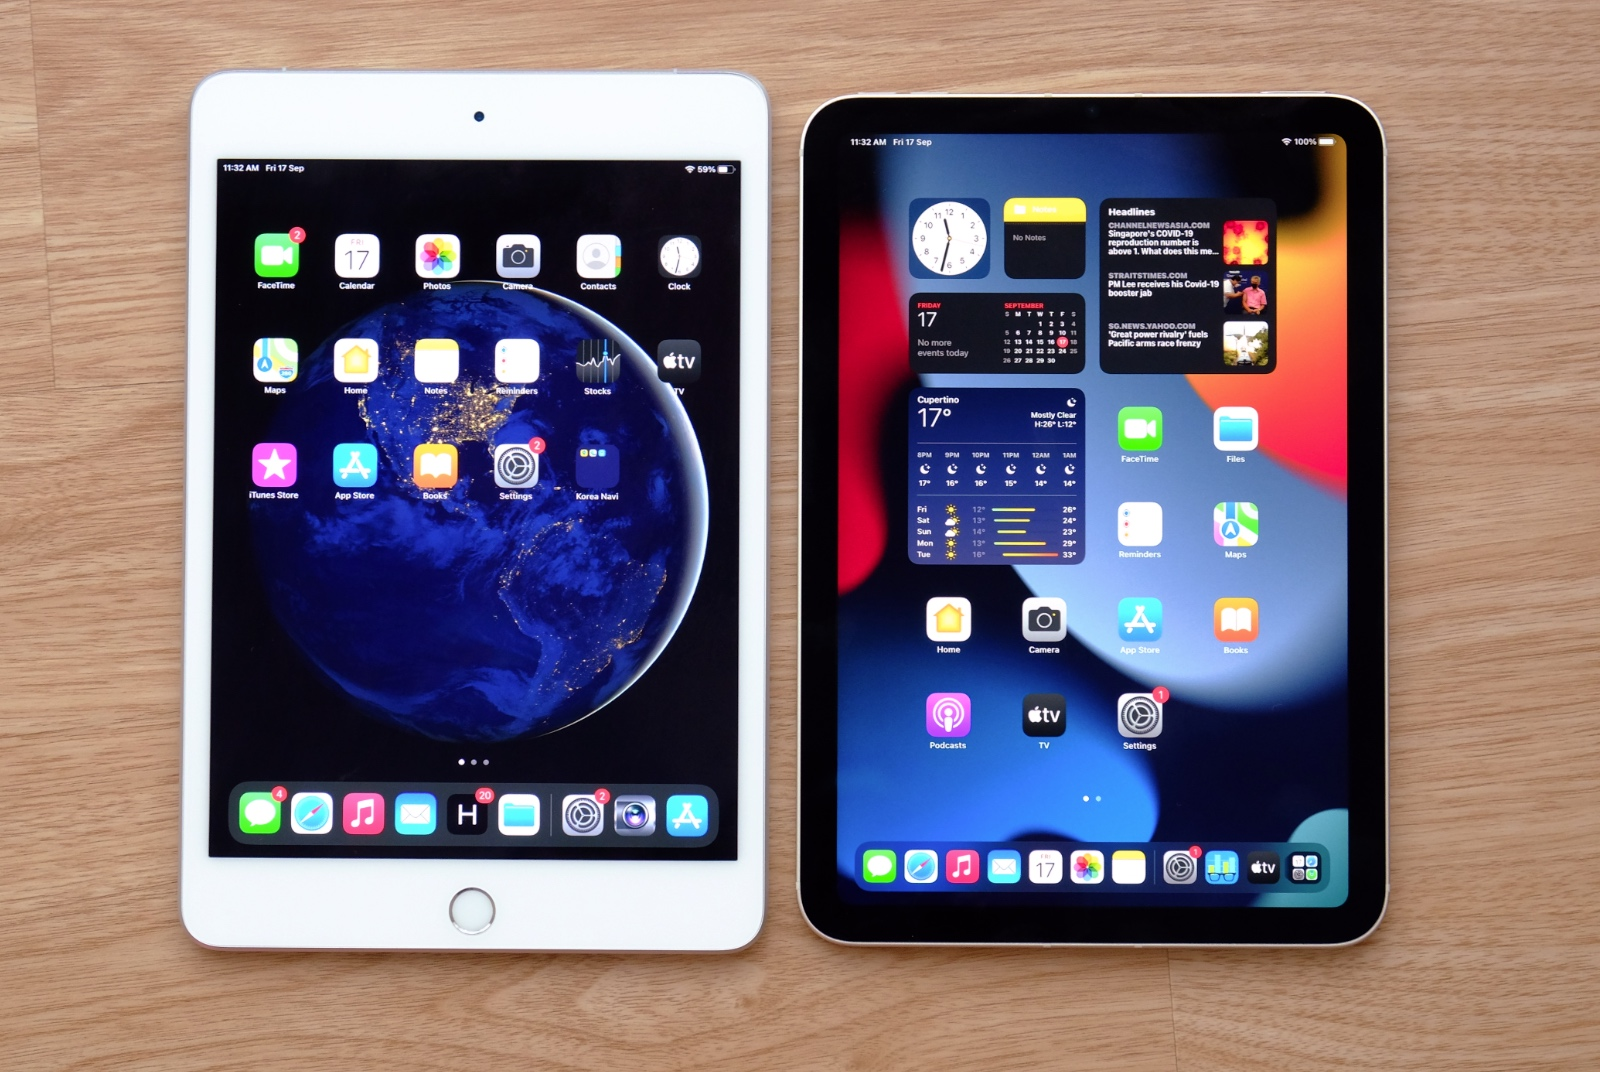 The new iPad Mini is a little smaller than the last generation version but it has a larger screen.